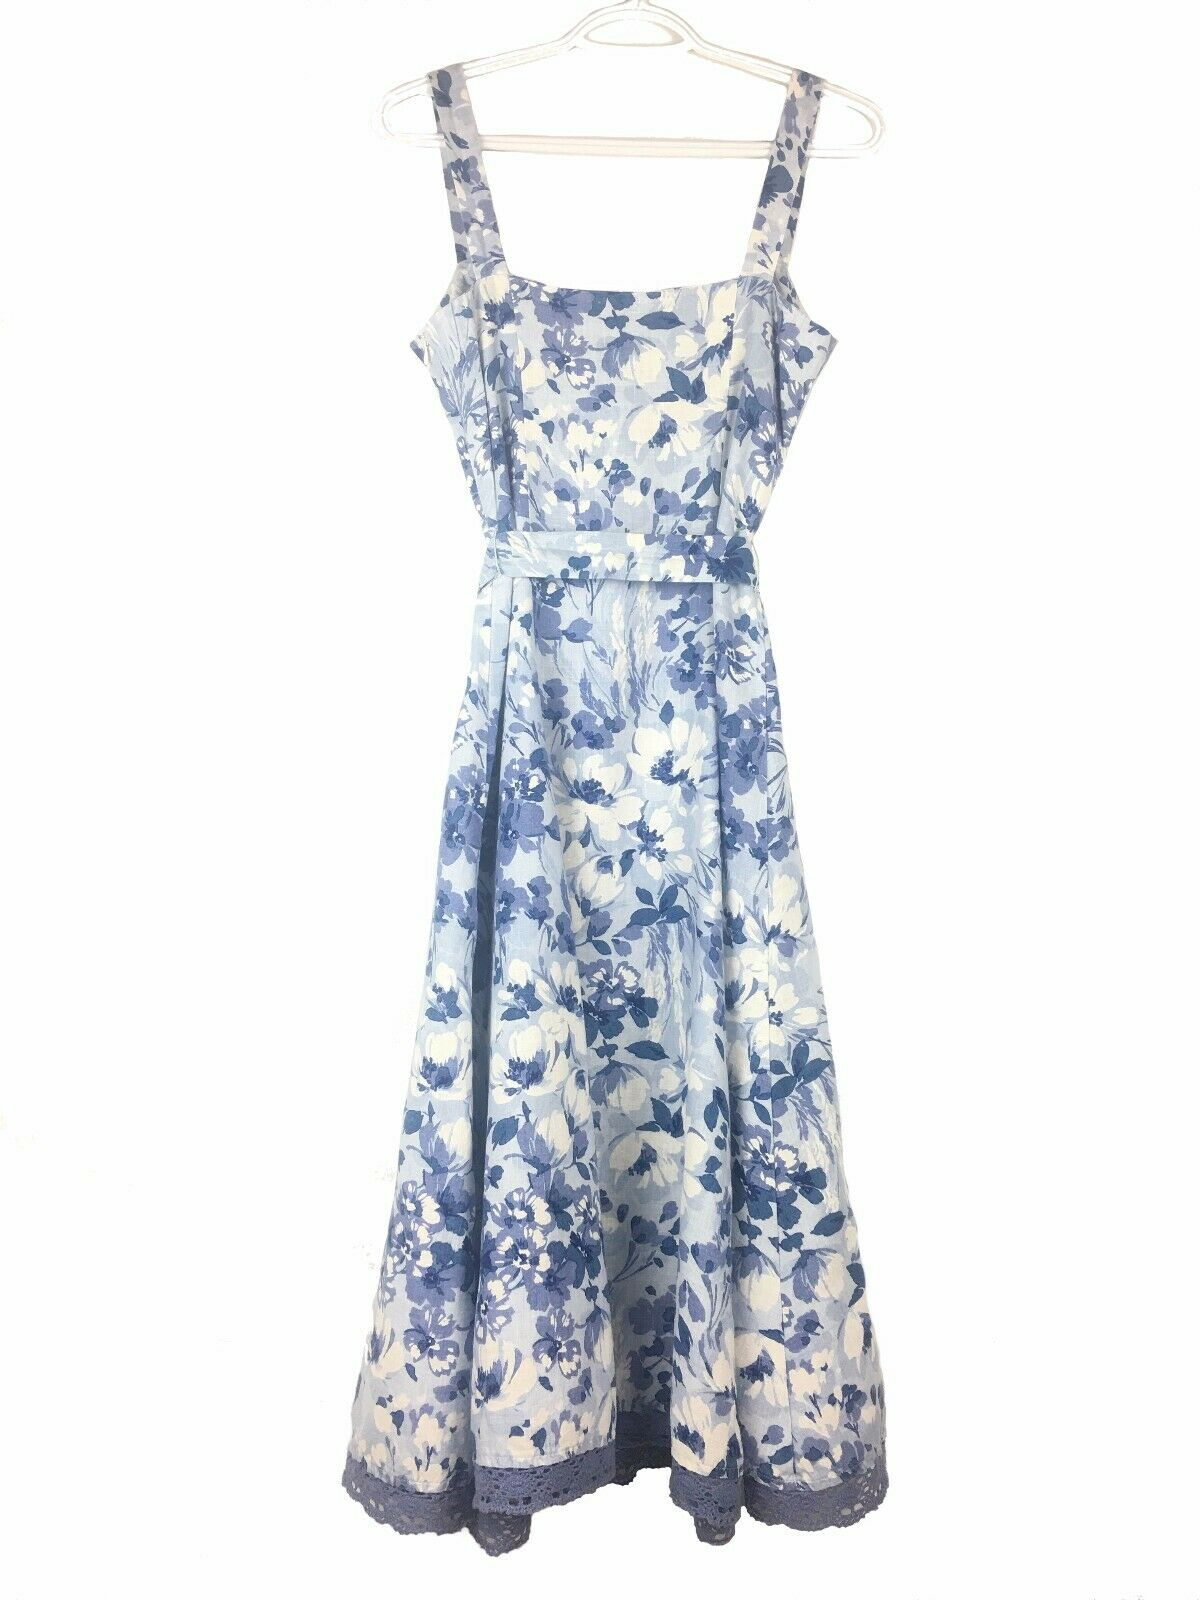 Marks and Spencer Per Una 100% Linen Blue Floral Sweetheart Midi Dress Size 8R